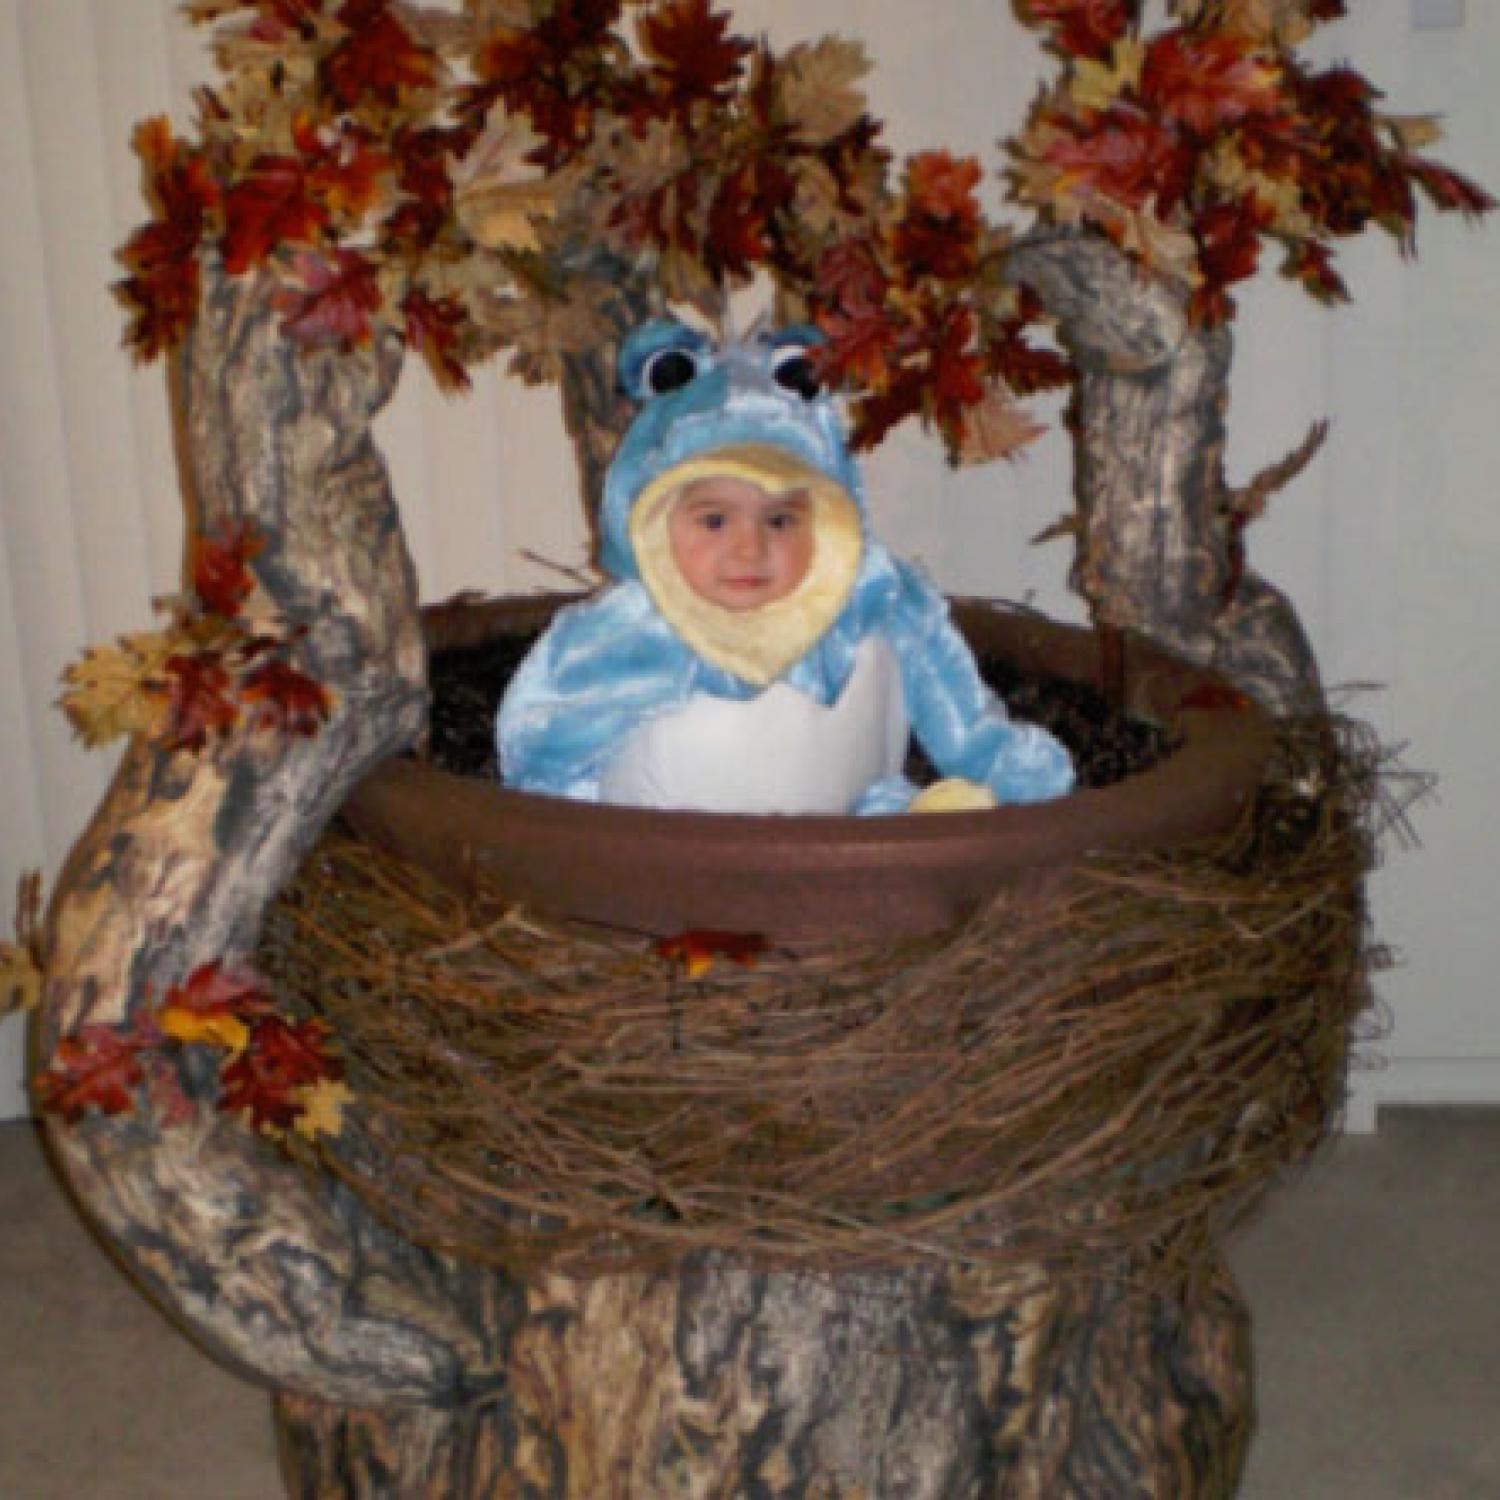 35+ Easy Homemade Halloween Costumes for Kids | Parenting